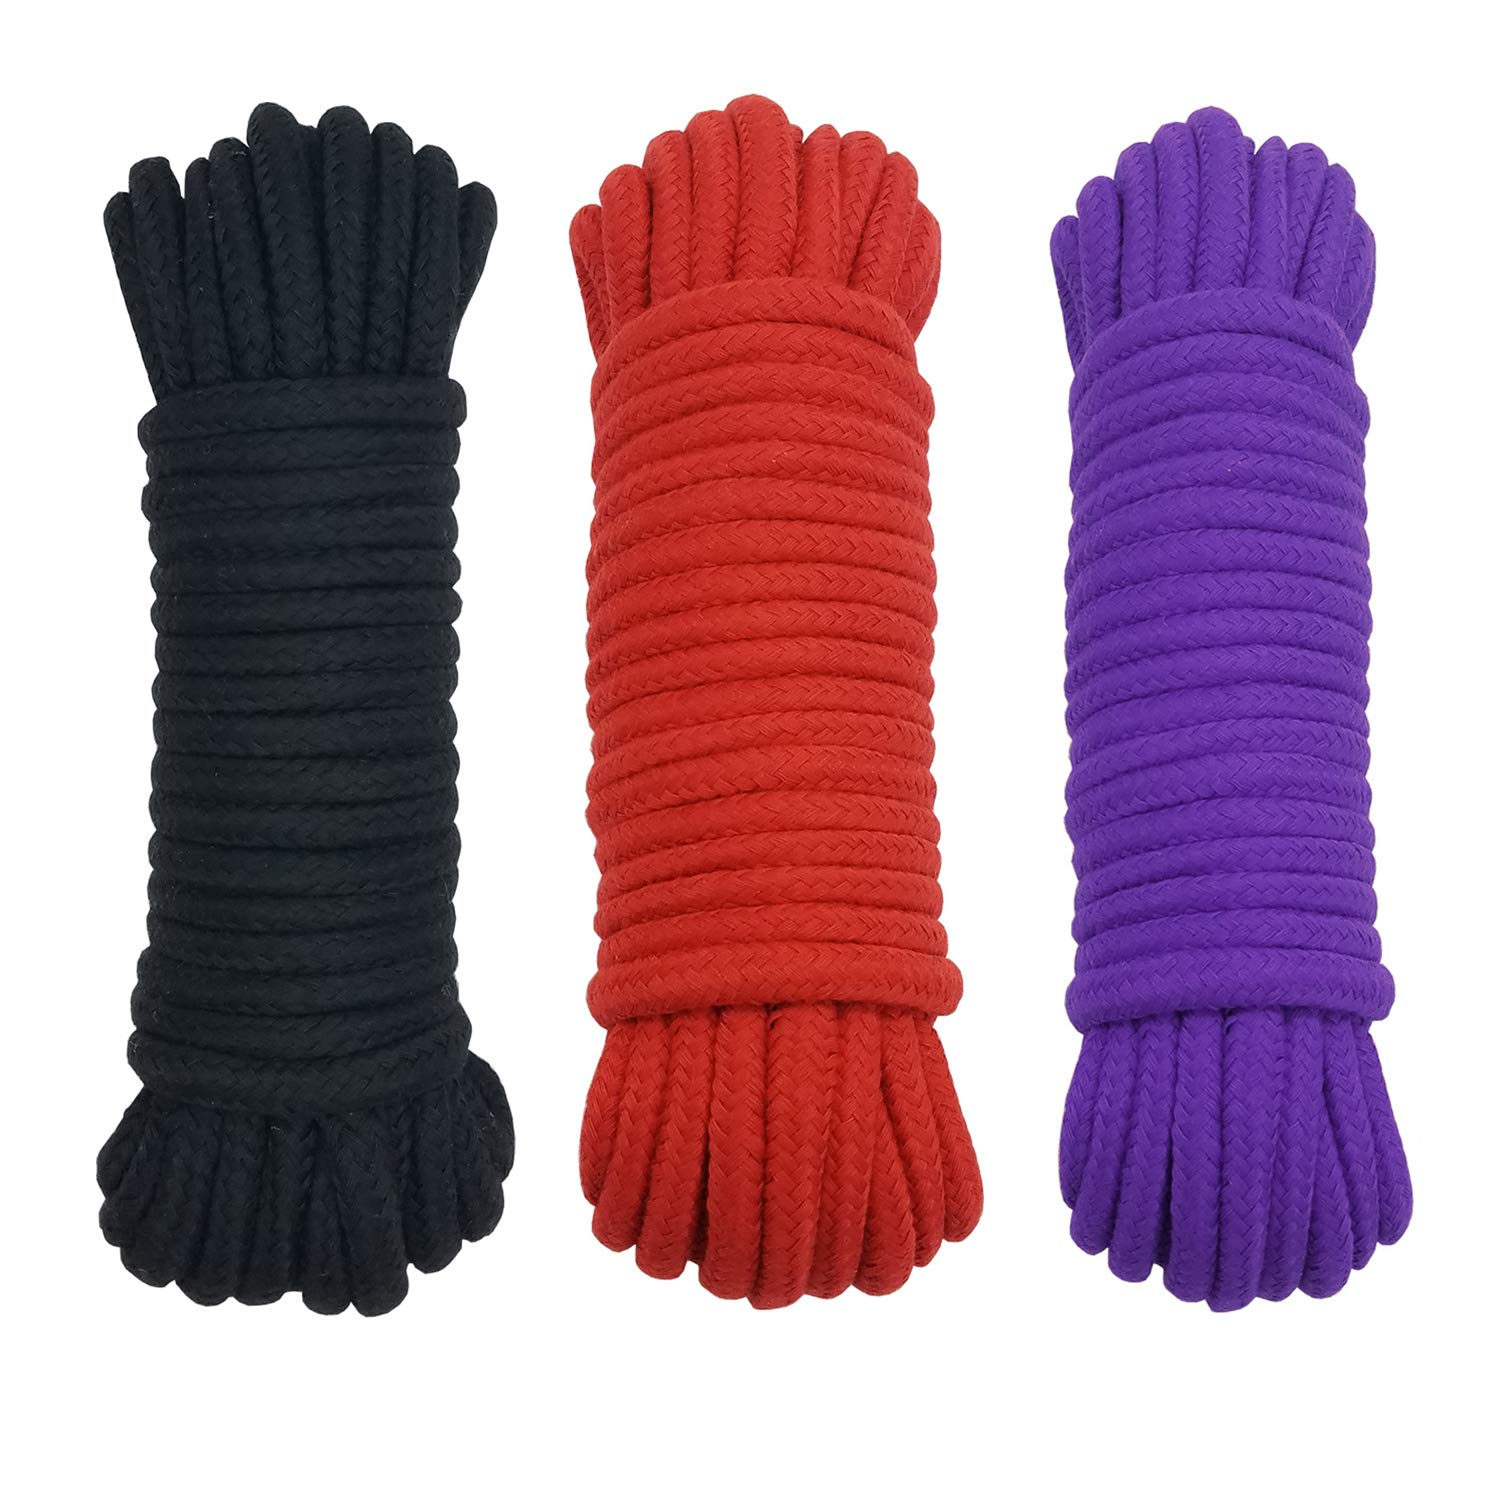 Ldoux 3PCS Soft Cotton Ropes Strong Twisted Braided 30 Meters Long 10mm Diameter, Multi-use Thick Ties Cord for DIY Home Furniture Crafts Handmade Decorations, Black Red Purple